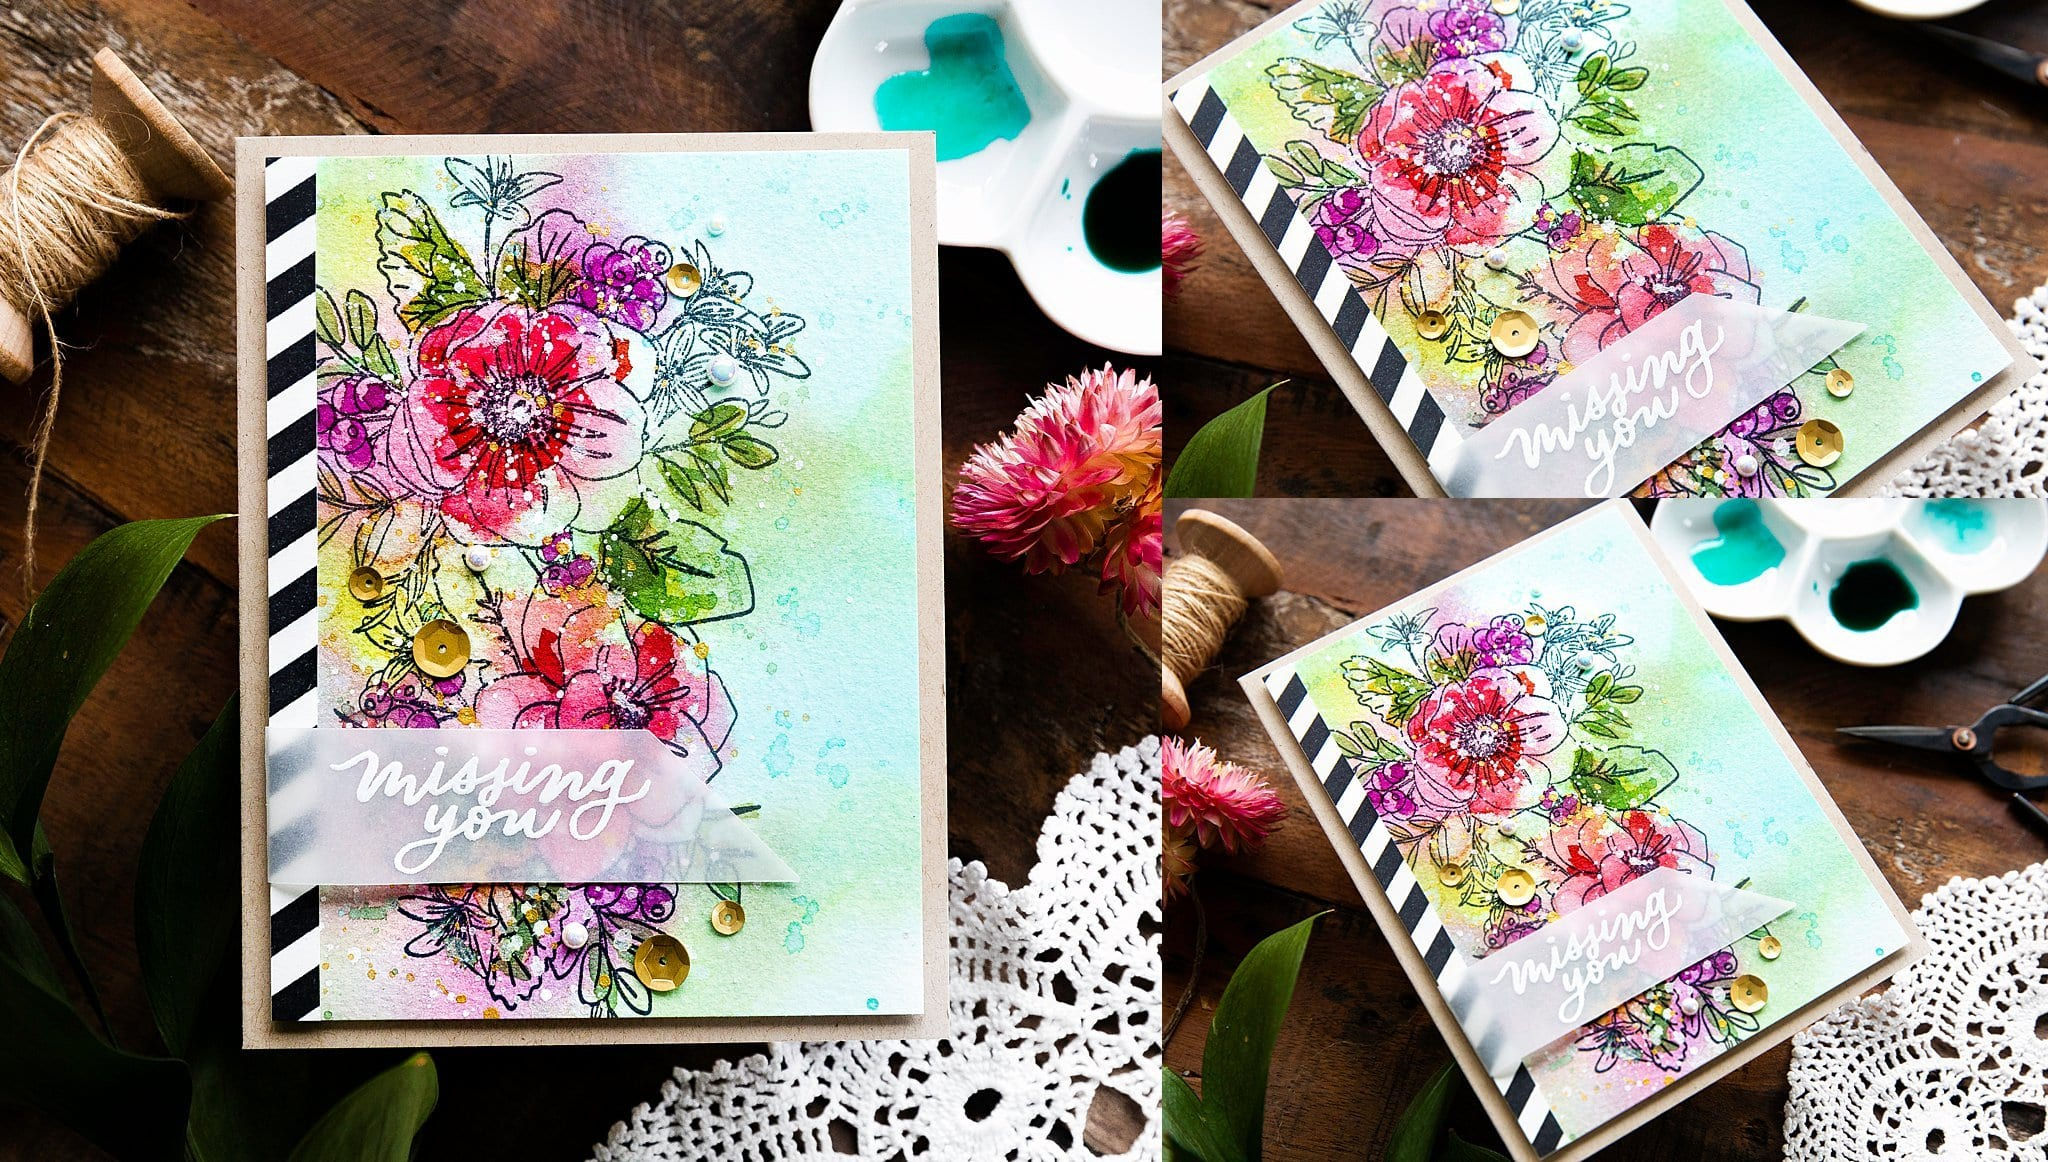 Video tutorial - handmade card by Debby Hughes inspired by Kristina Werner. Loosely watercoloured flower floral bouquet #debbyhughes #limedoodledesign #handmadecards #cardmaking #cardmakingideas #cardmakingtechniques  #cardmakingtutorials #handmadecardideas #simonsaysstamp